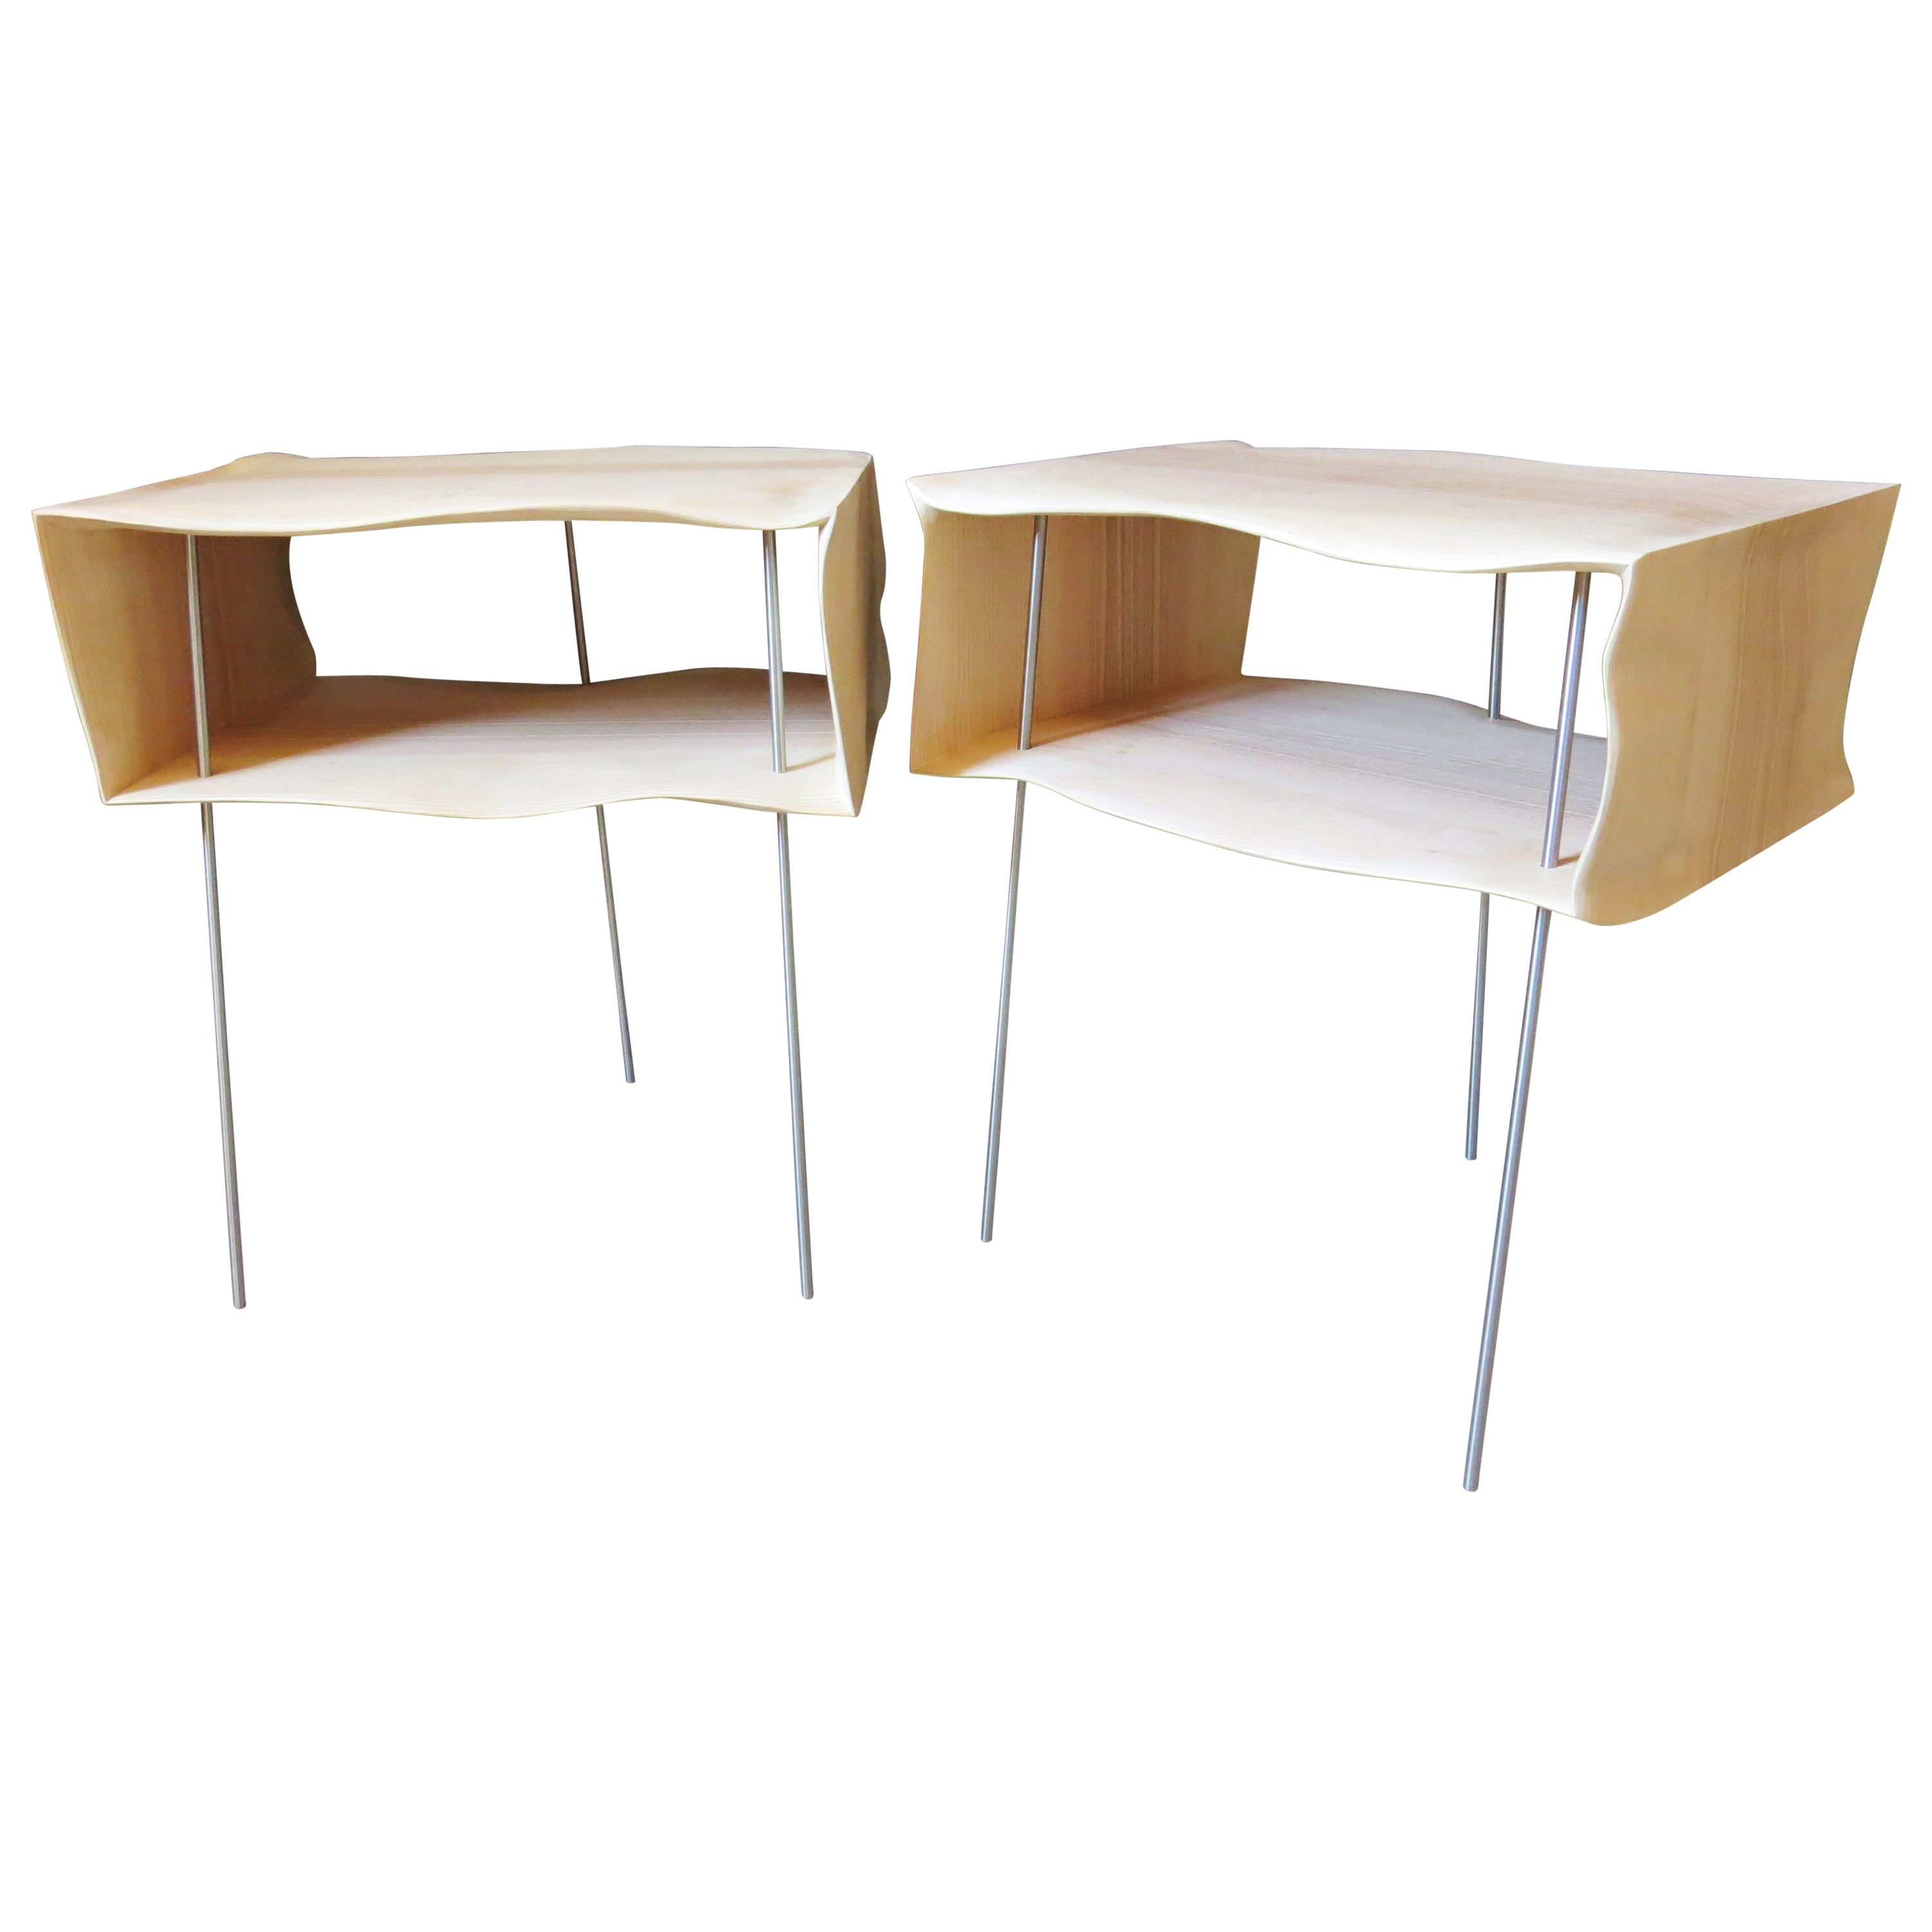 Bedside Tables, Organic Design, Handmade, Two-Pieces Set, Solid Wood